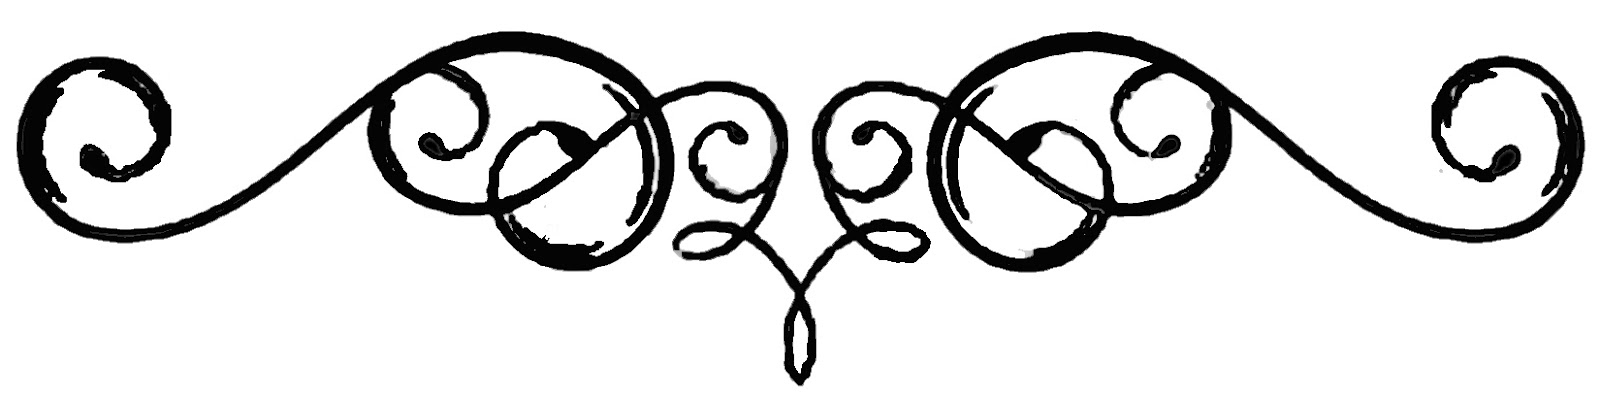 Scrollwork clipart, Scrollwork Transparent FREE for download.